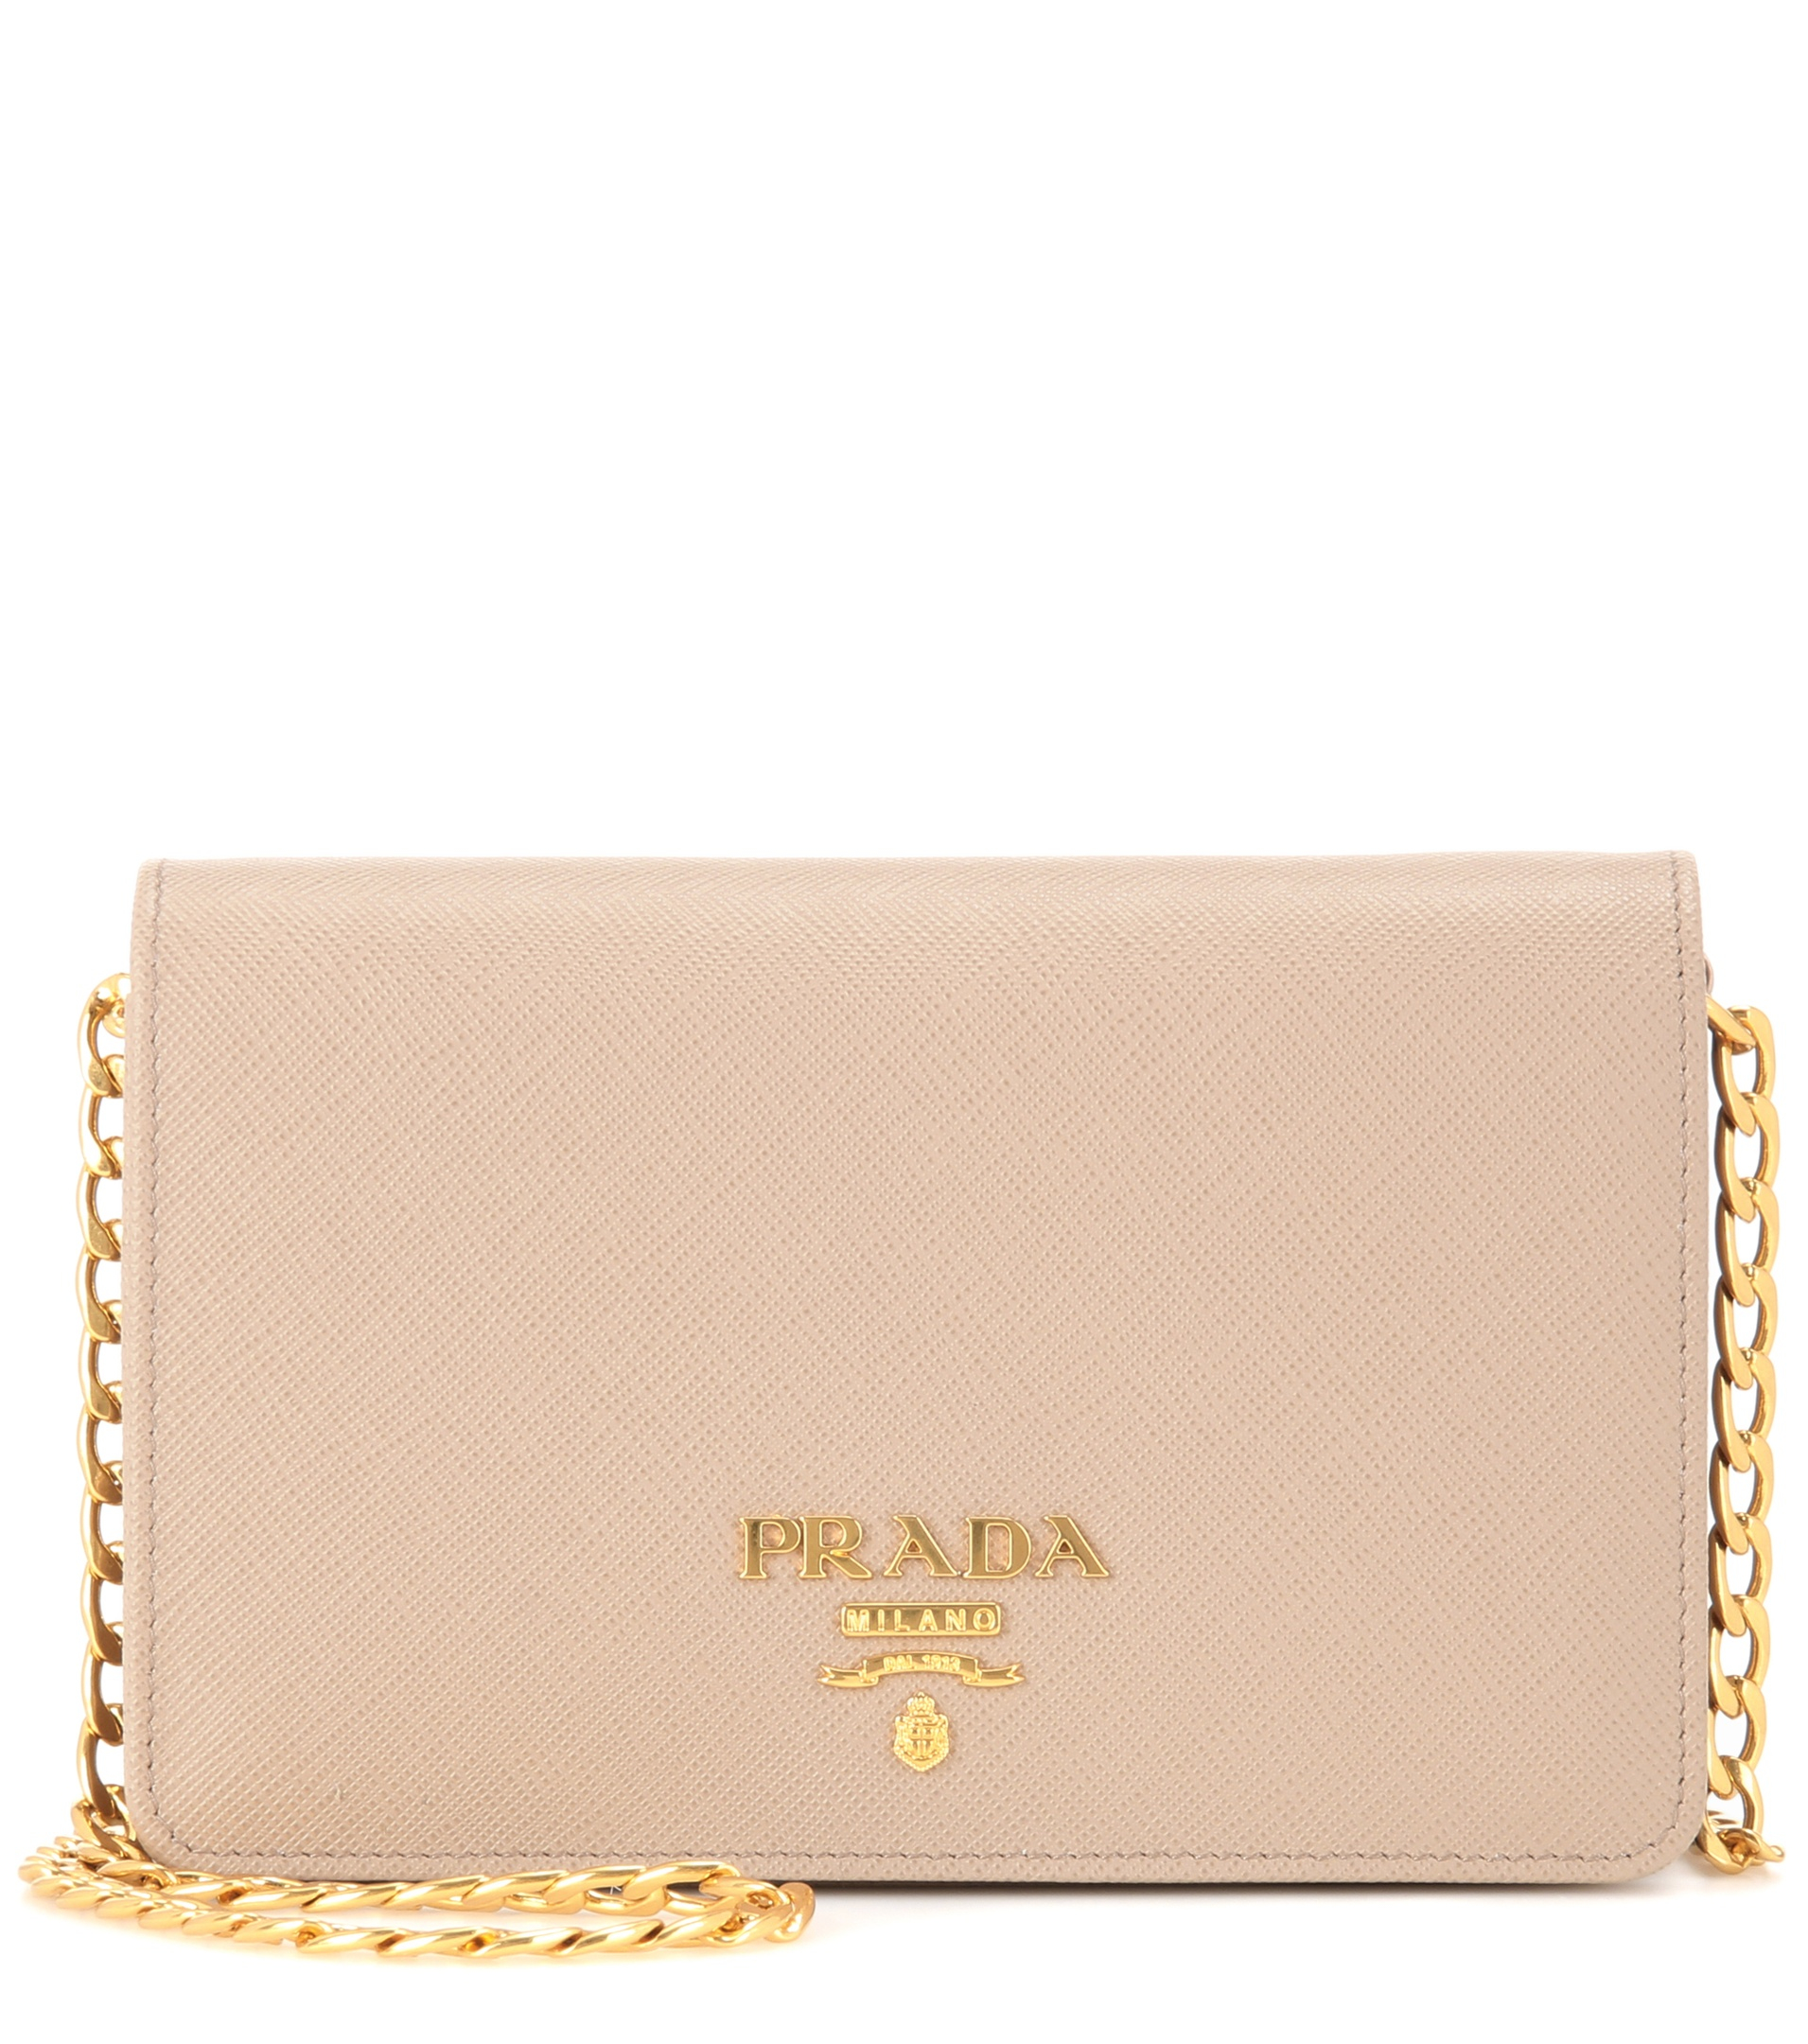 9305240497aa Prada Galleria Saffiano Leather Lux Small Shoulder Bag in Natural - Lyst